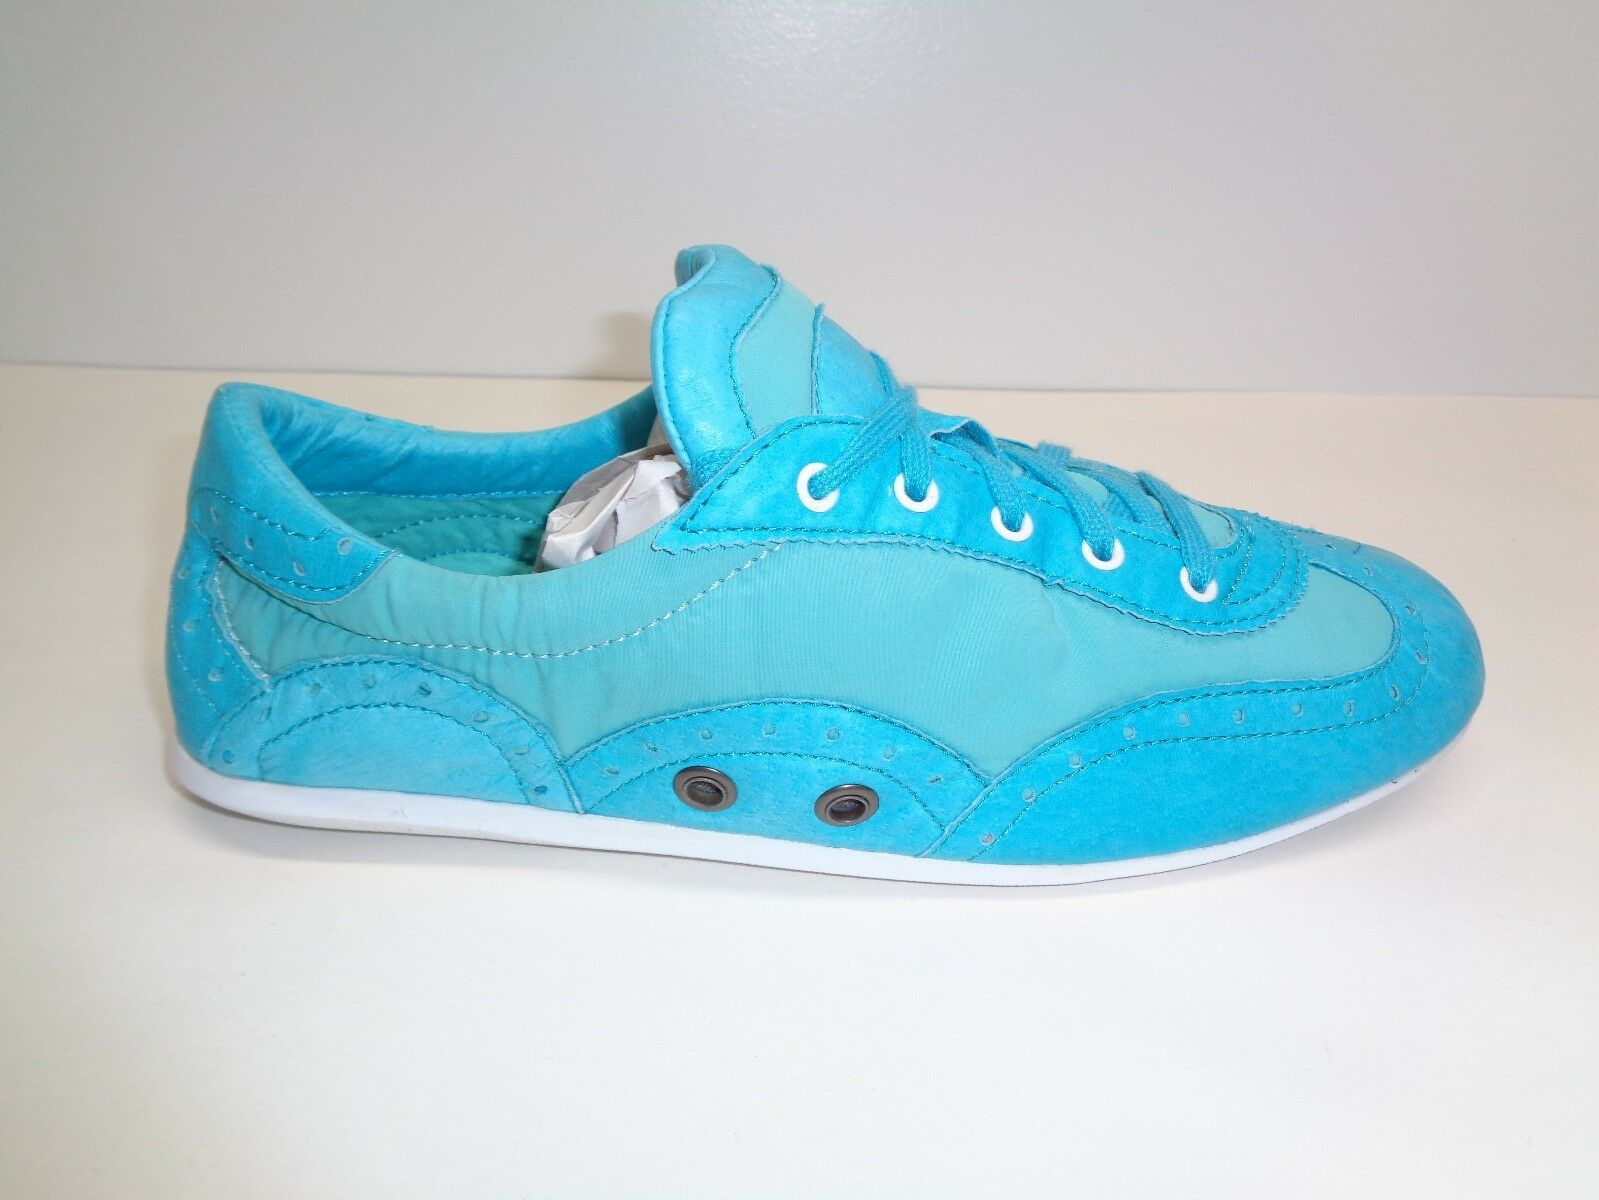 Volatile Kicks Size 10 BANGIN Turquoise Leather Sneakers New Womens Shoes